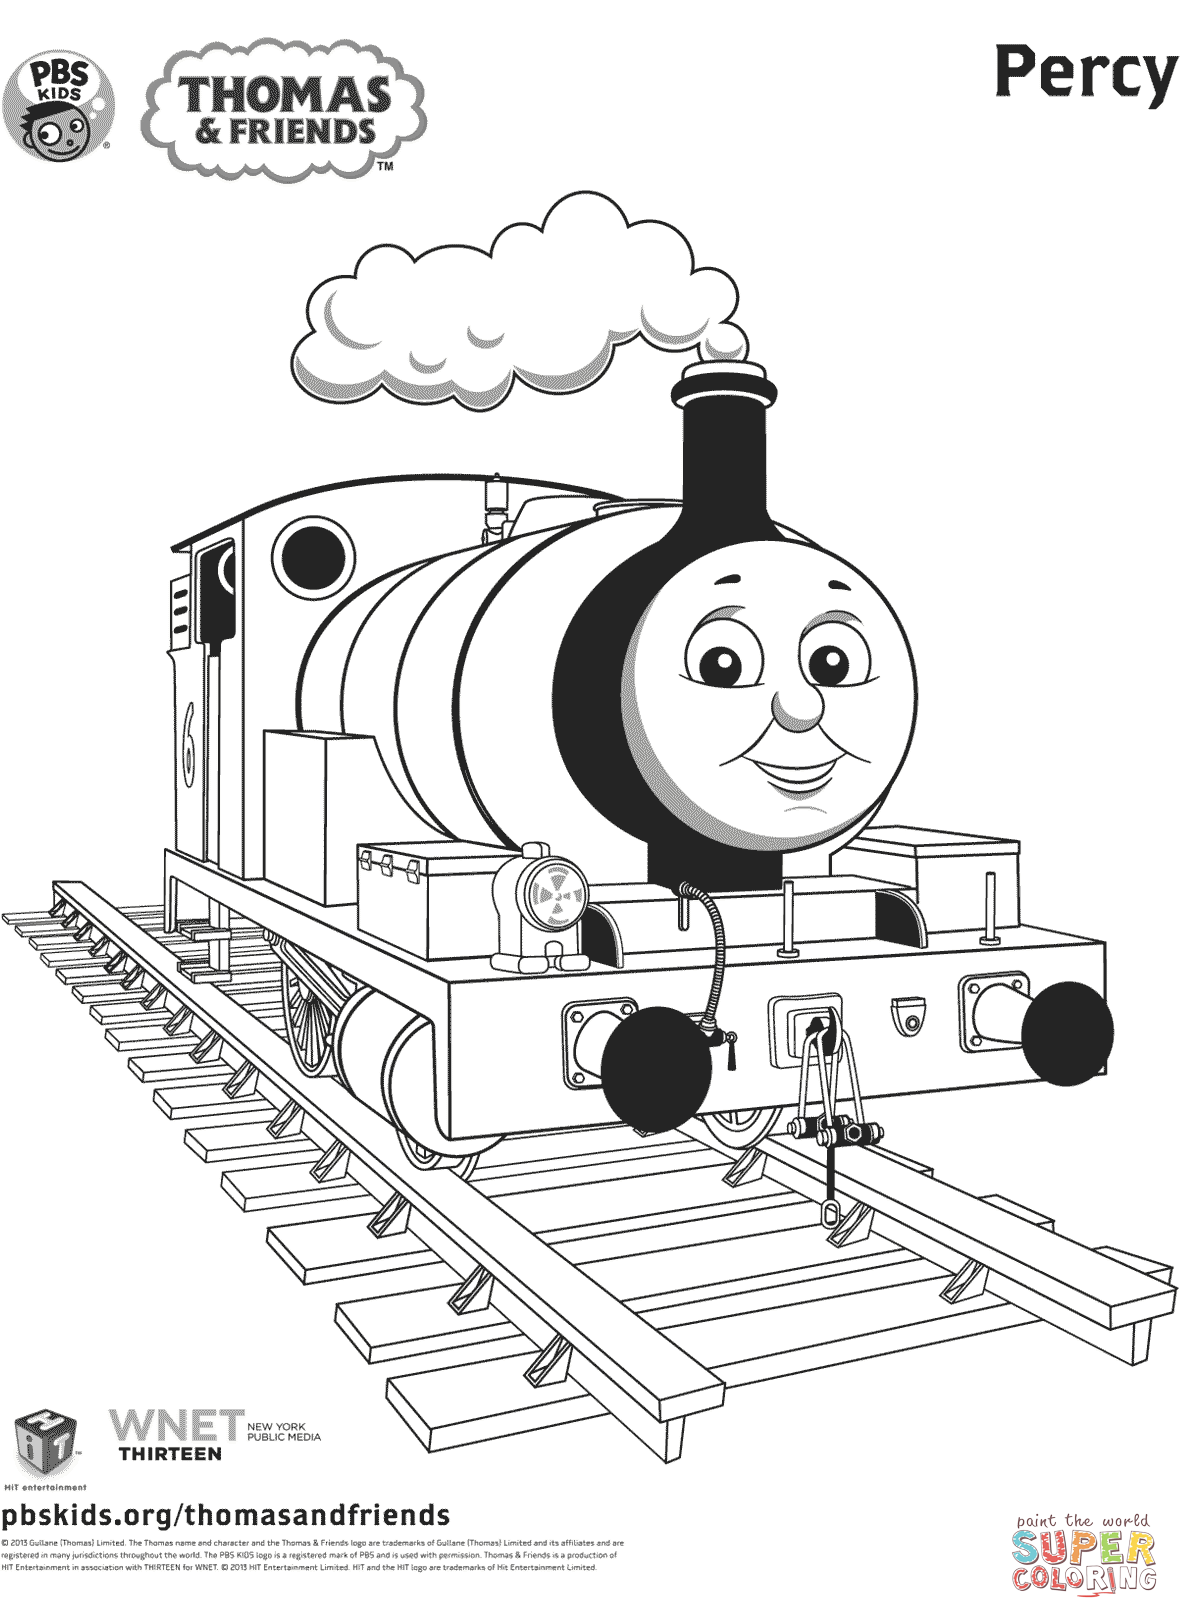 thomas and friends drawing pages percy from thomas friends coloring page free printable thomas drawing and friends pages